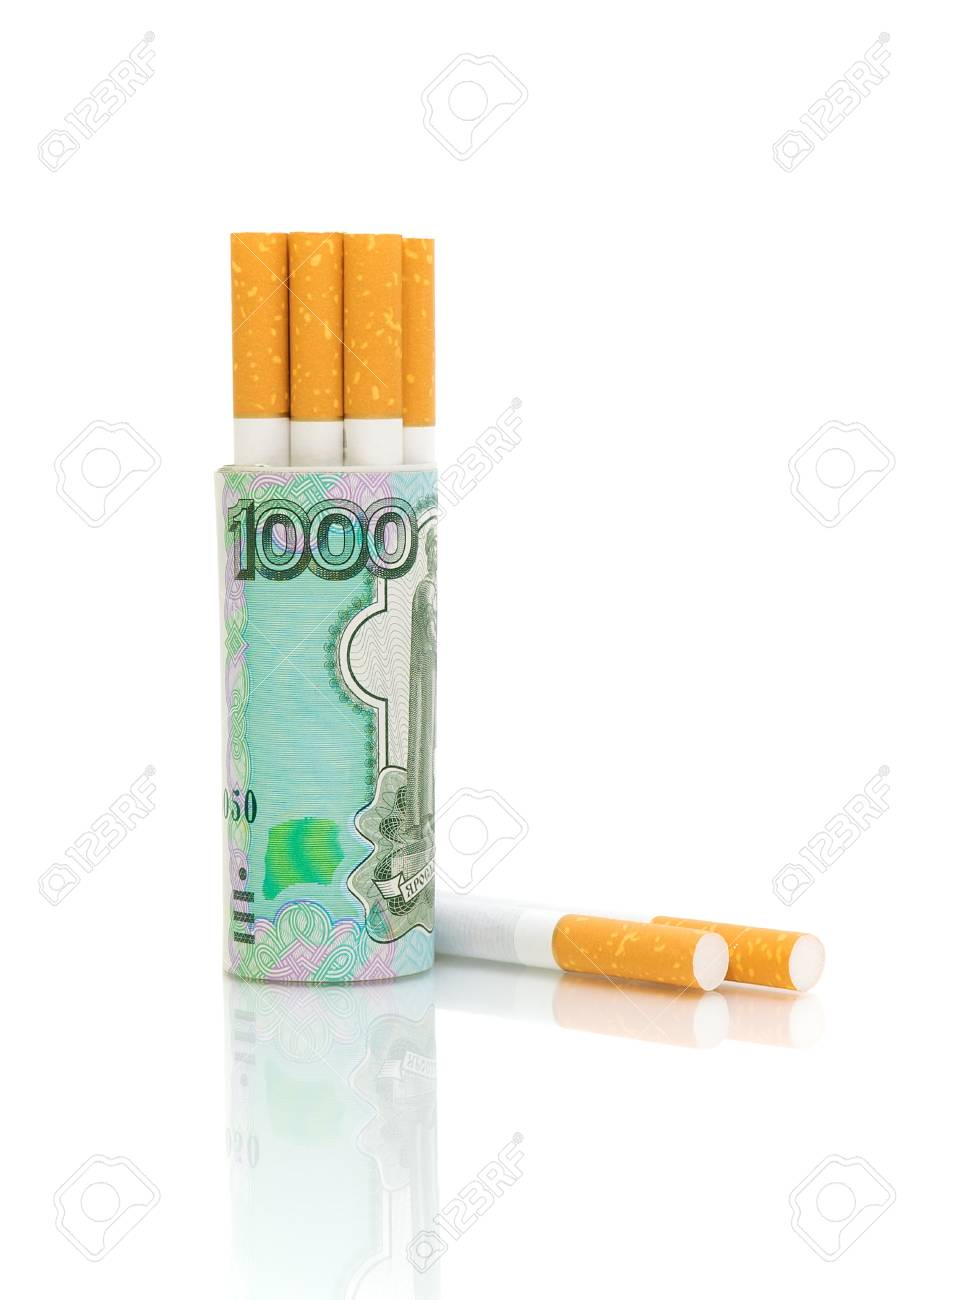 Cigarettes and banknotes on a white background. The concept - expensive habits. Stock Photo - 13746877